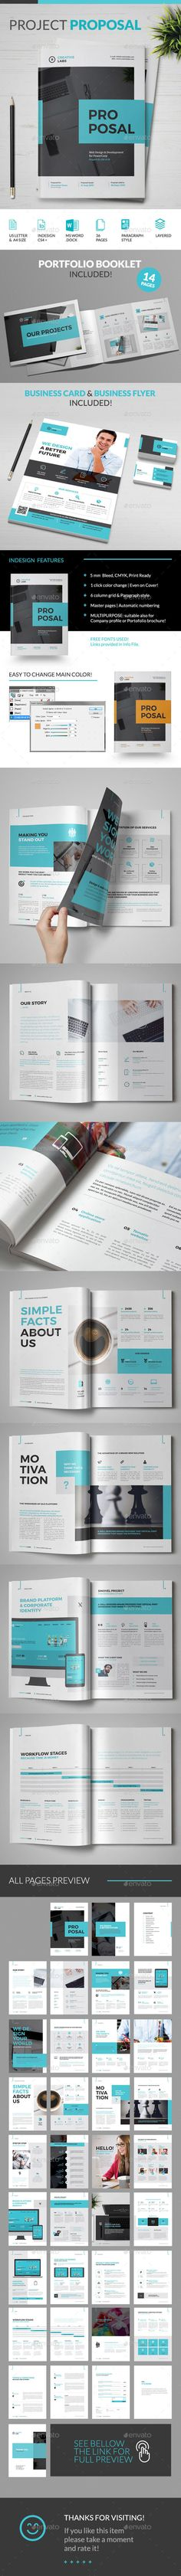 Proposal — InDesign Template #stylish #sample proposal • Download ➝ https://graphicriver.net/item/proposal/18540145?ref=pxcr